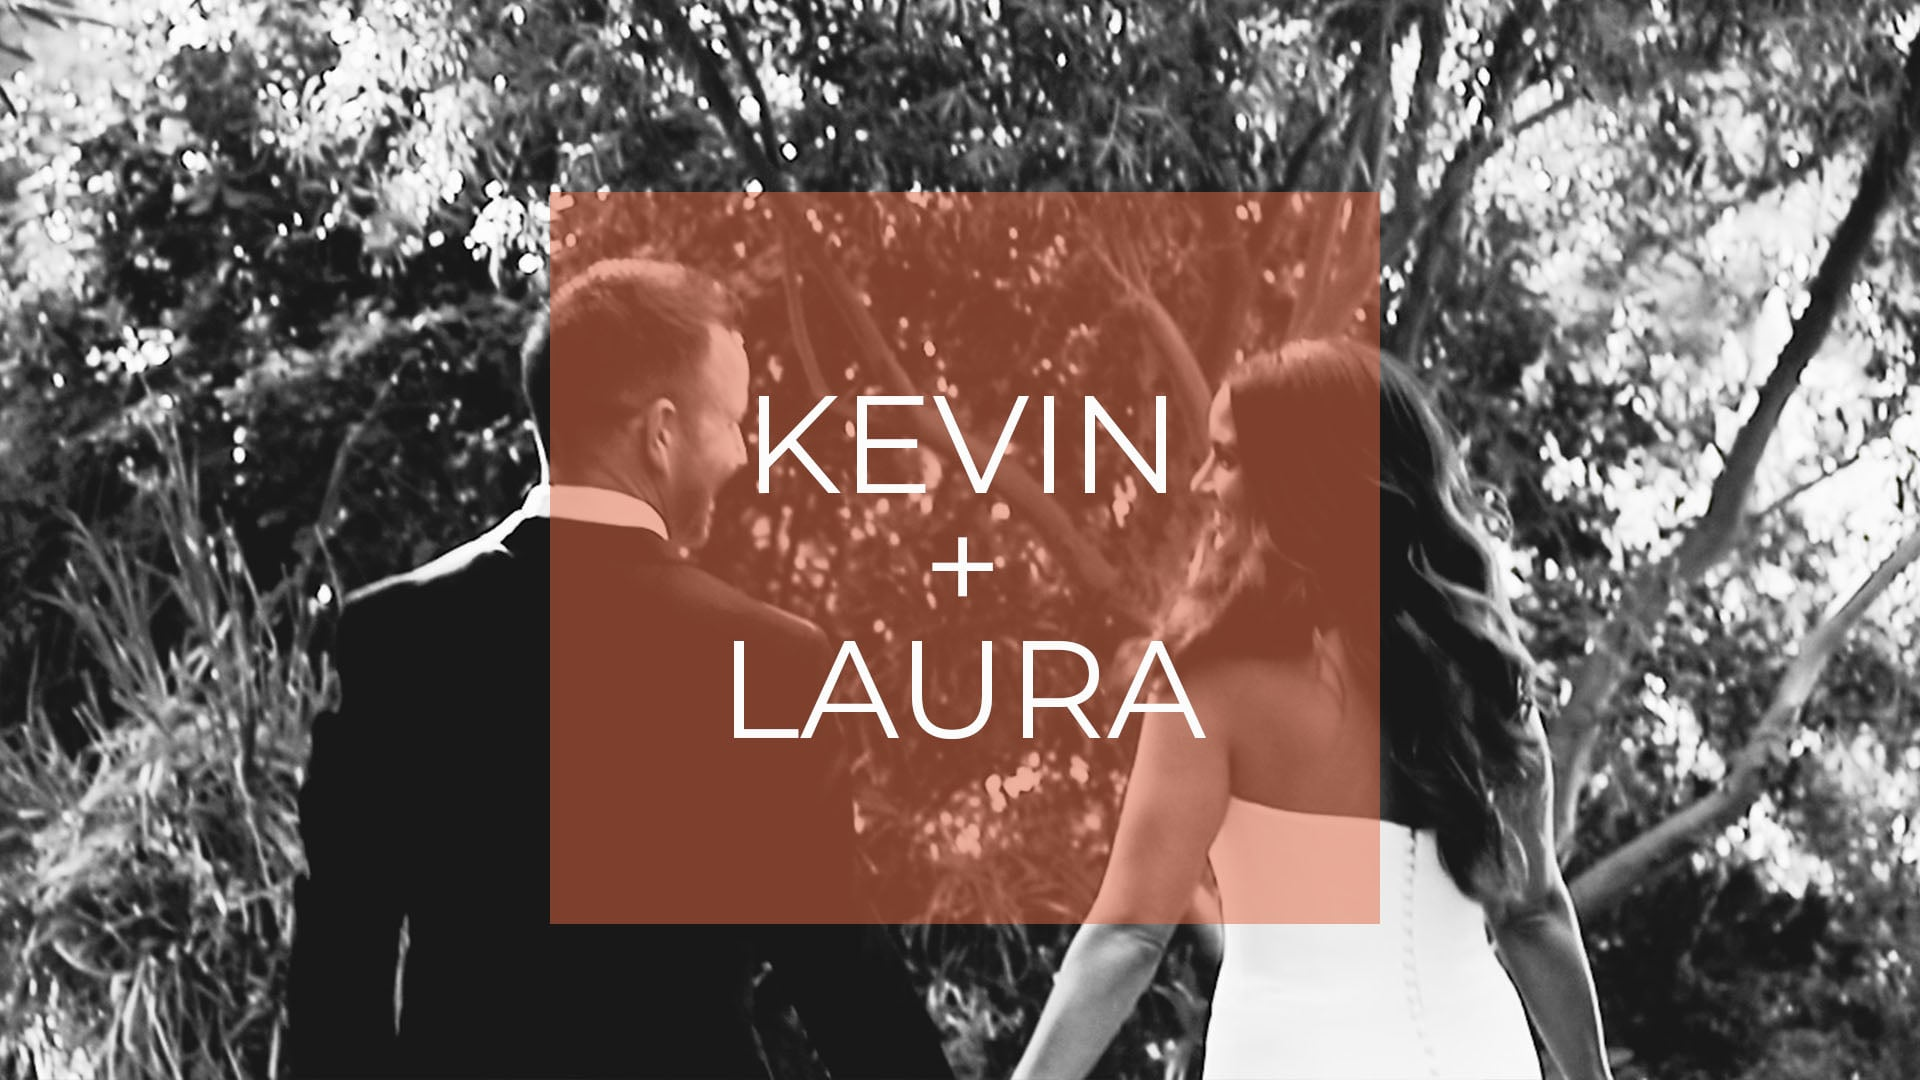 Kevin + Laura